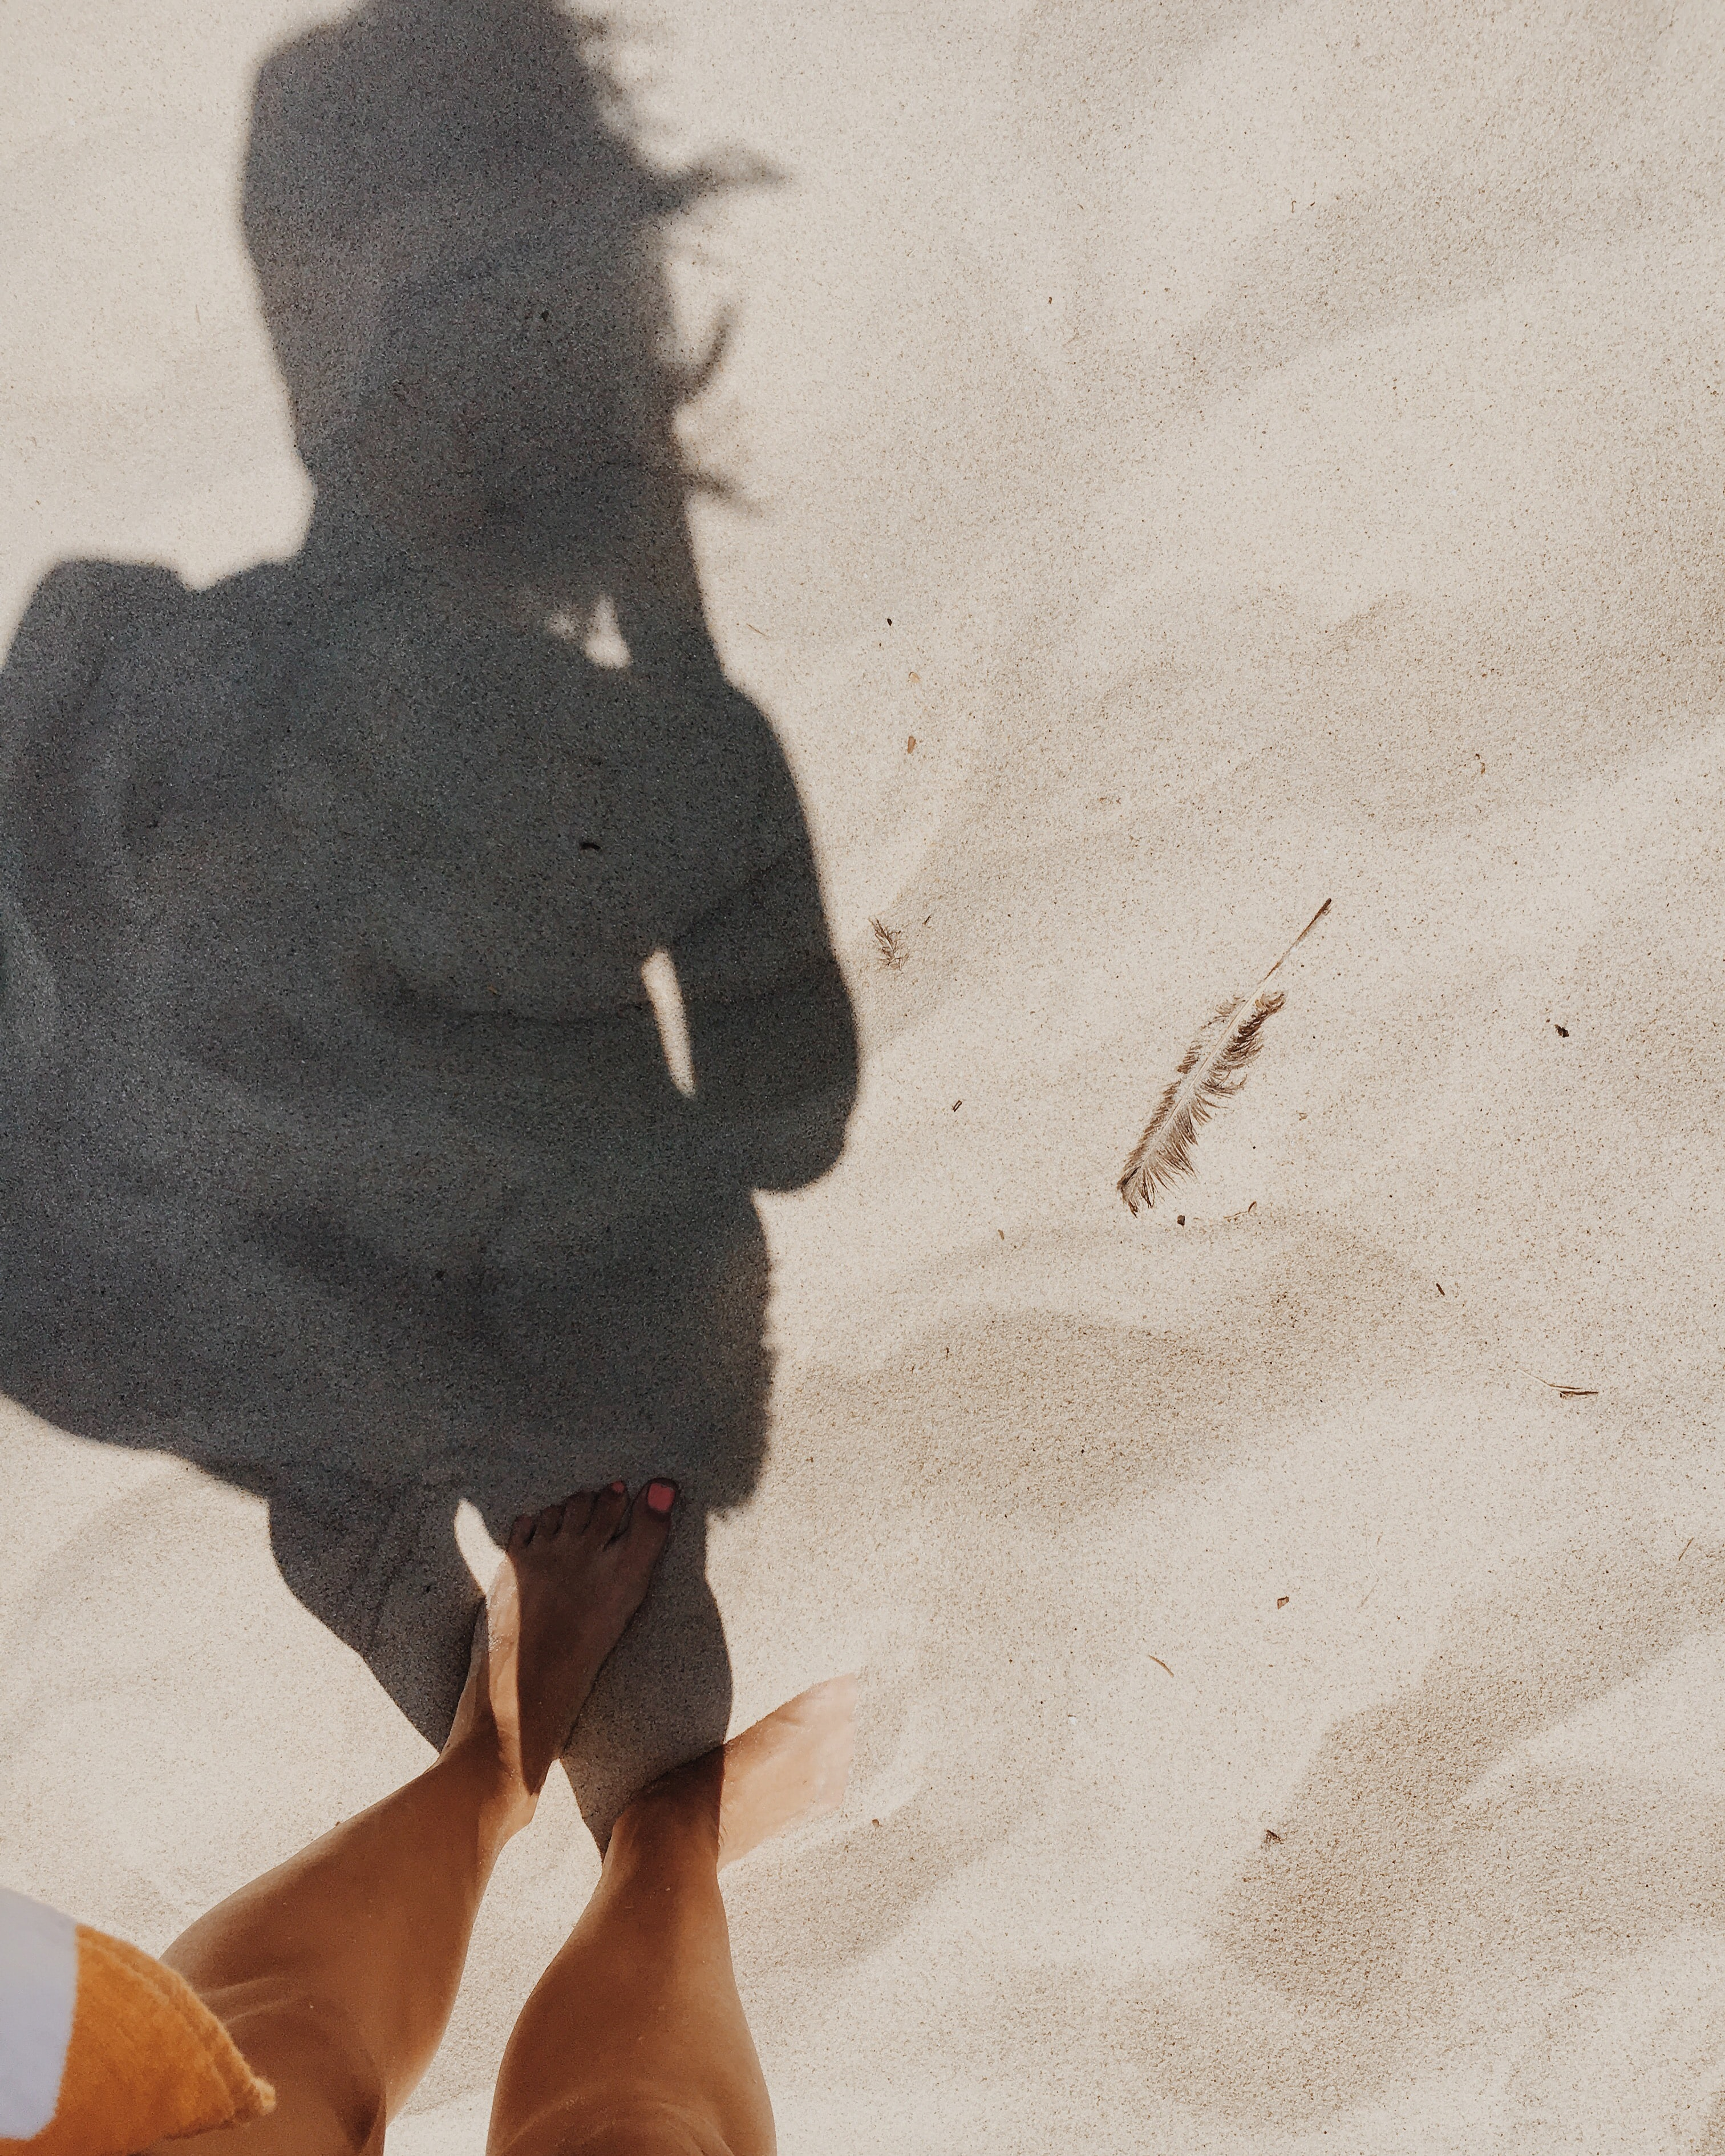 The shadow of a woman standing in the sand on a beach.